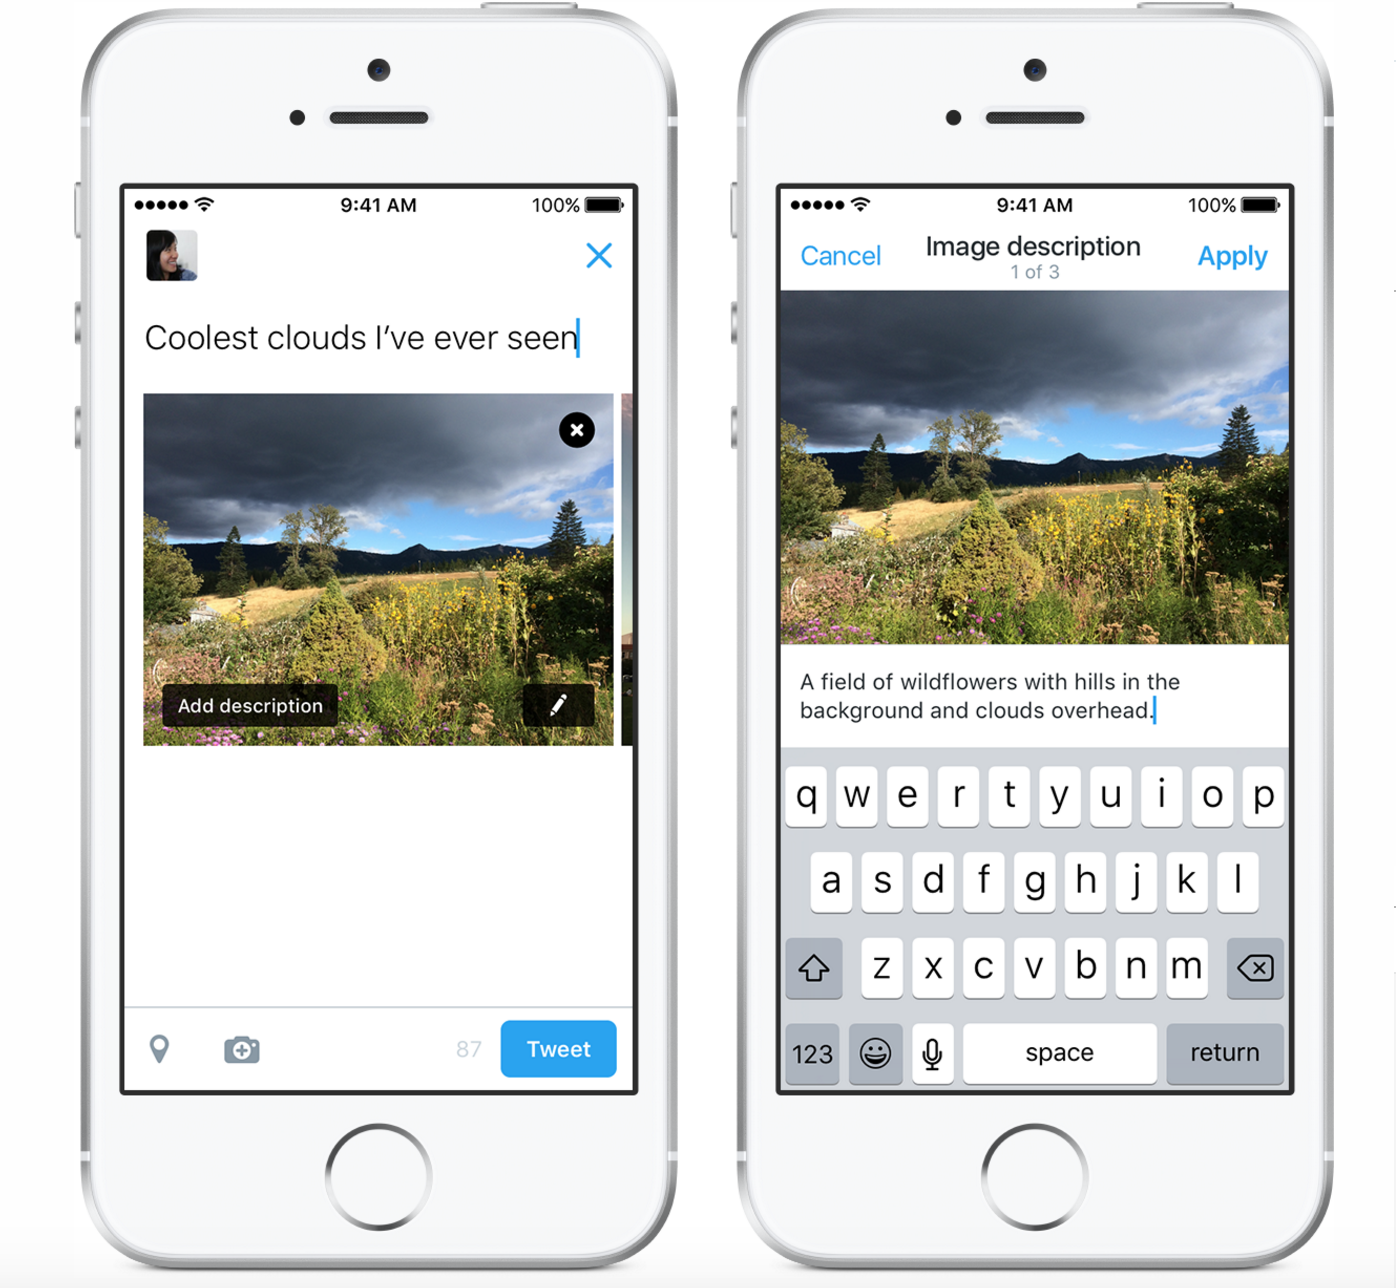 Twitter released a new feature on Tuesday designed to help blind people 'see' more photos.